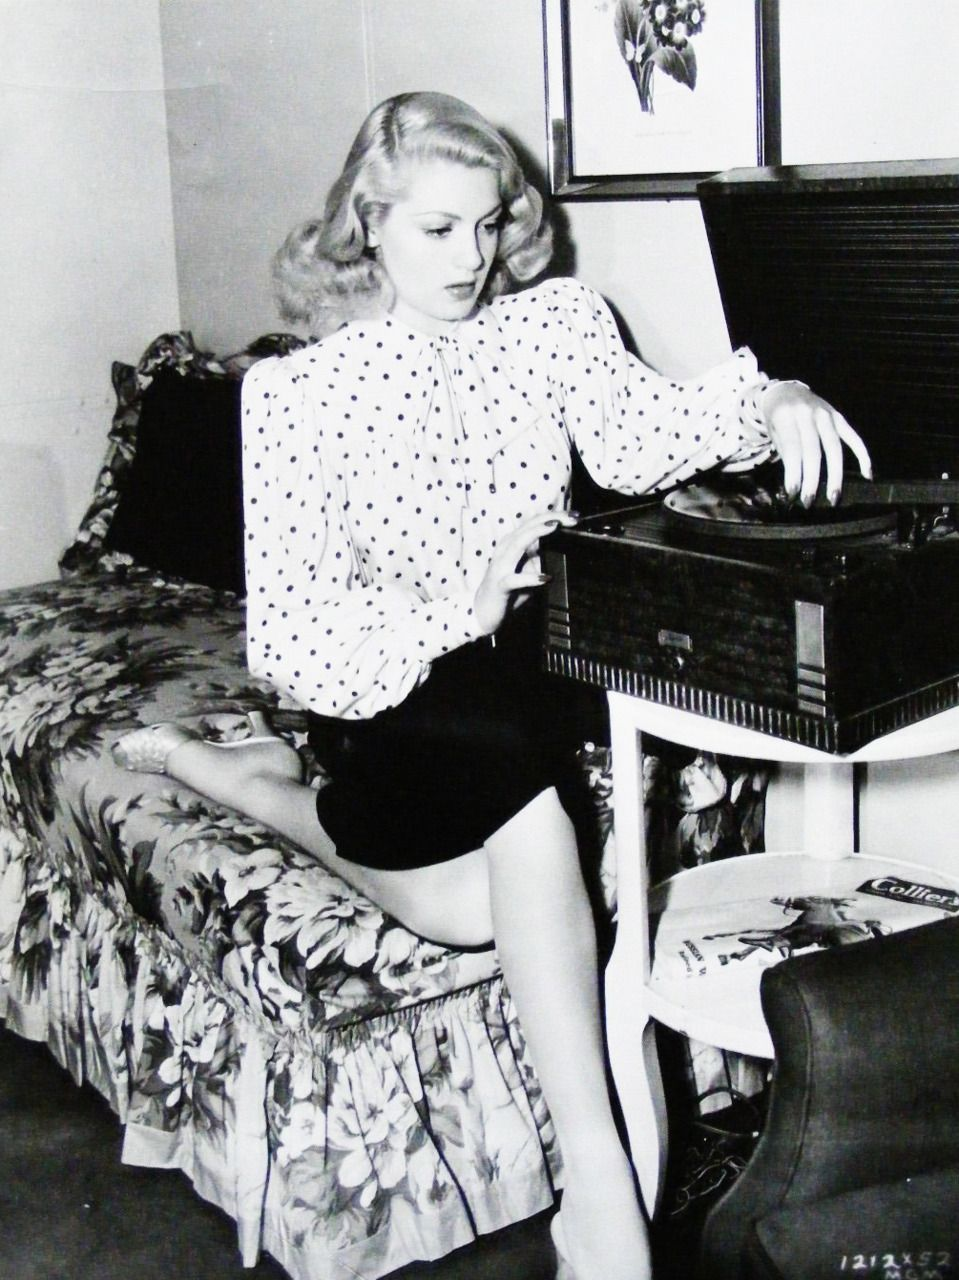 Lana Turner Playing A Record 1940s Record Player ビニール